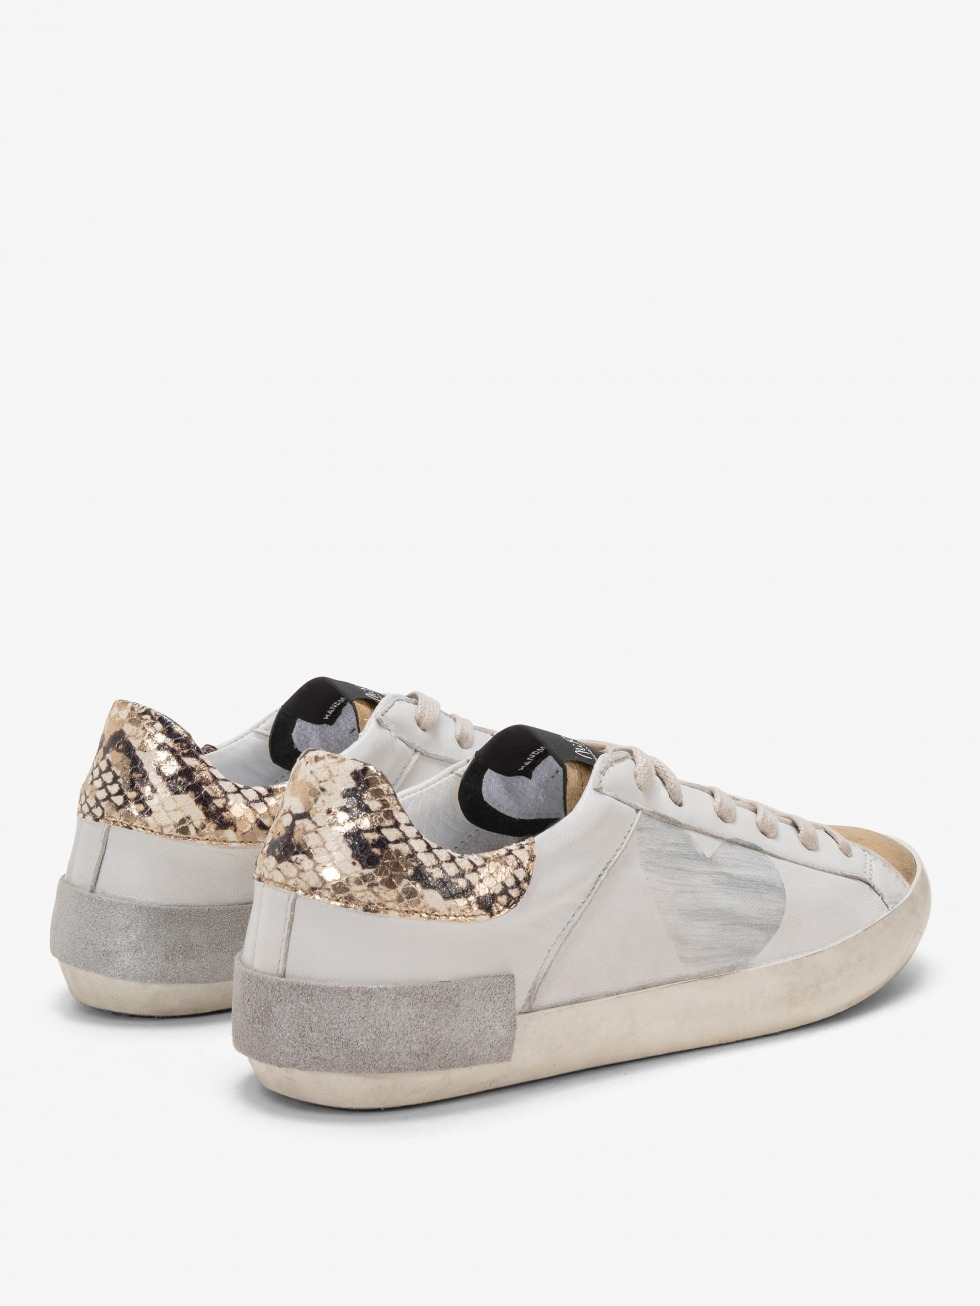 SHOPPING ON LINE NIRA RUBENS SNEAKERS GINGER ALE AMBER CUORE NEW COLLECTION WOMEN'S SPRING SUMMER 2021